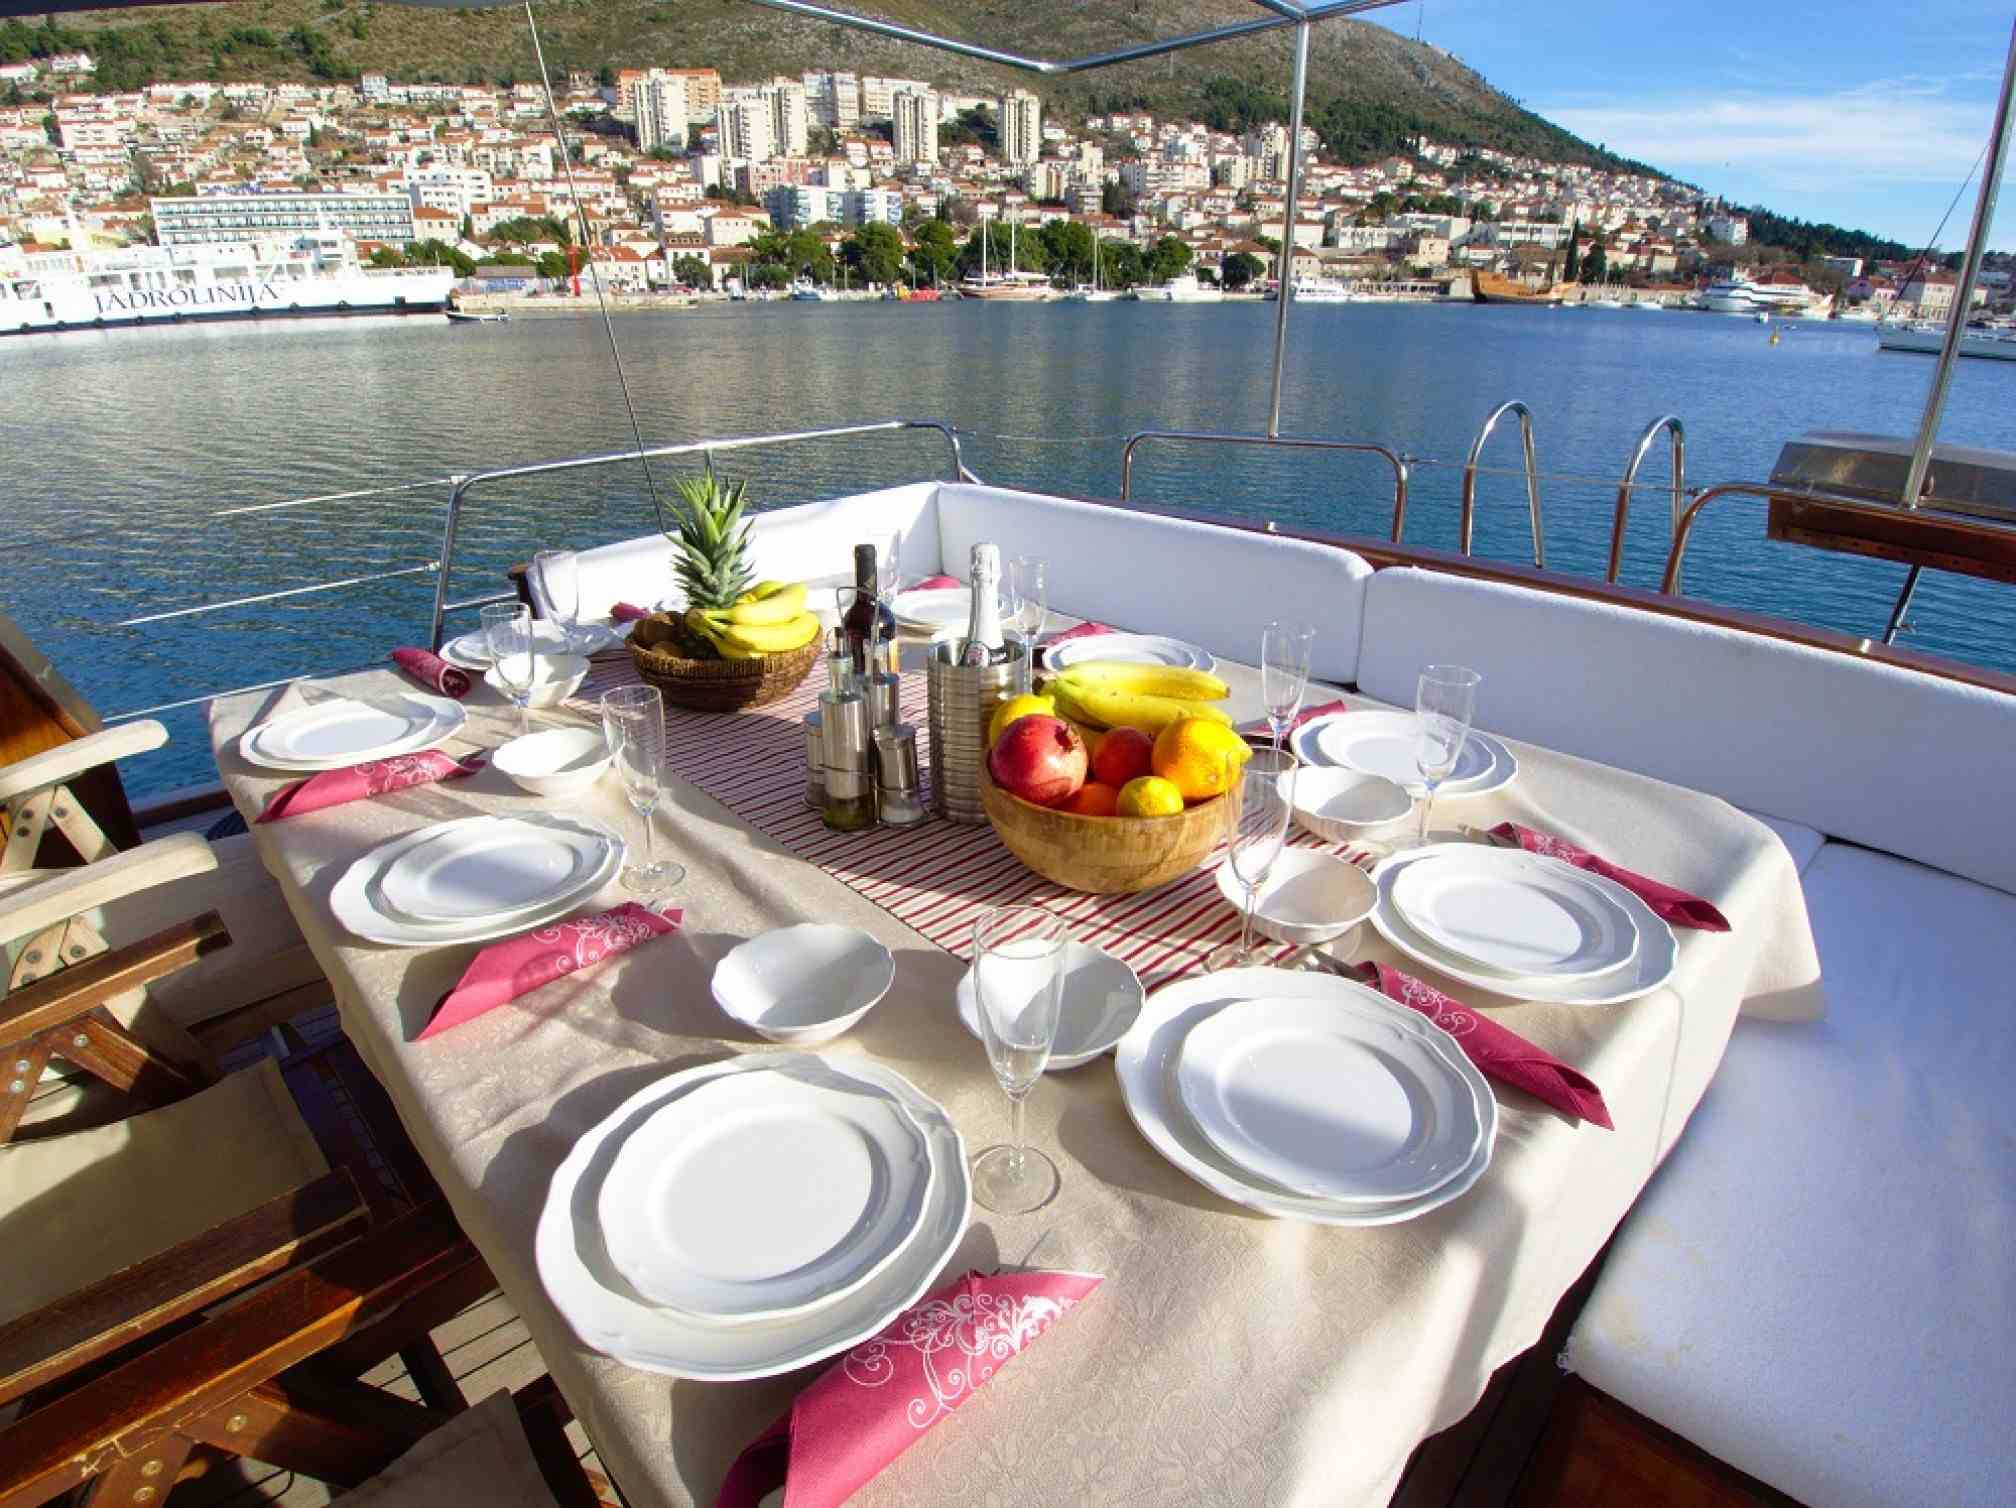 Adriatic Holiday gulet charter deck table